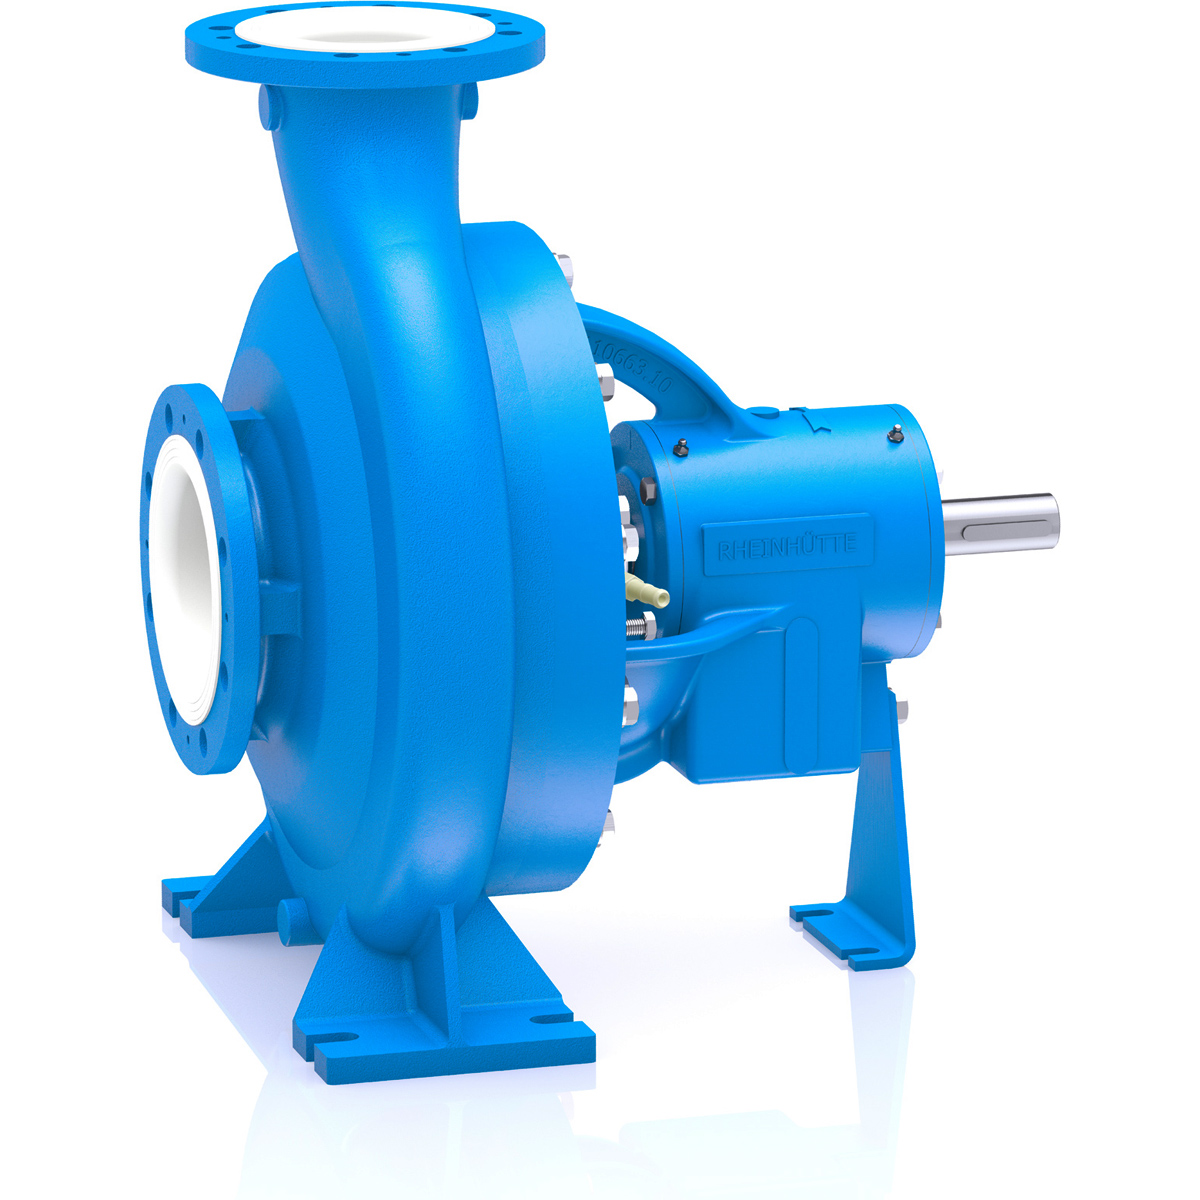 Material Plastic-linedDesign Standardized Chemical Pump (ISO 2858